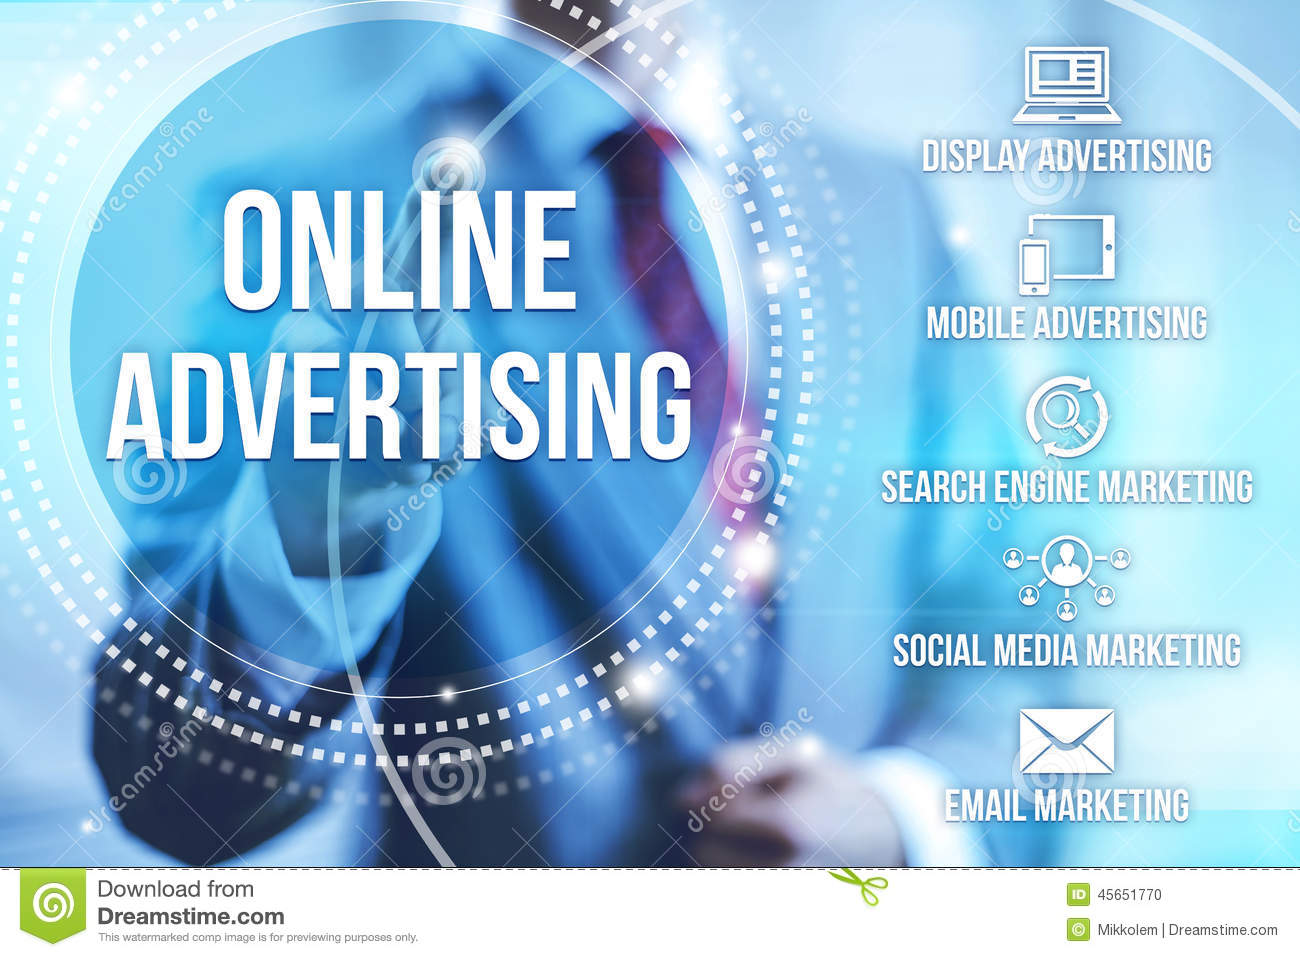 online-advertising-businessman-selecting-internet-45651770.jpg